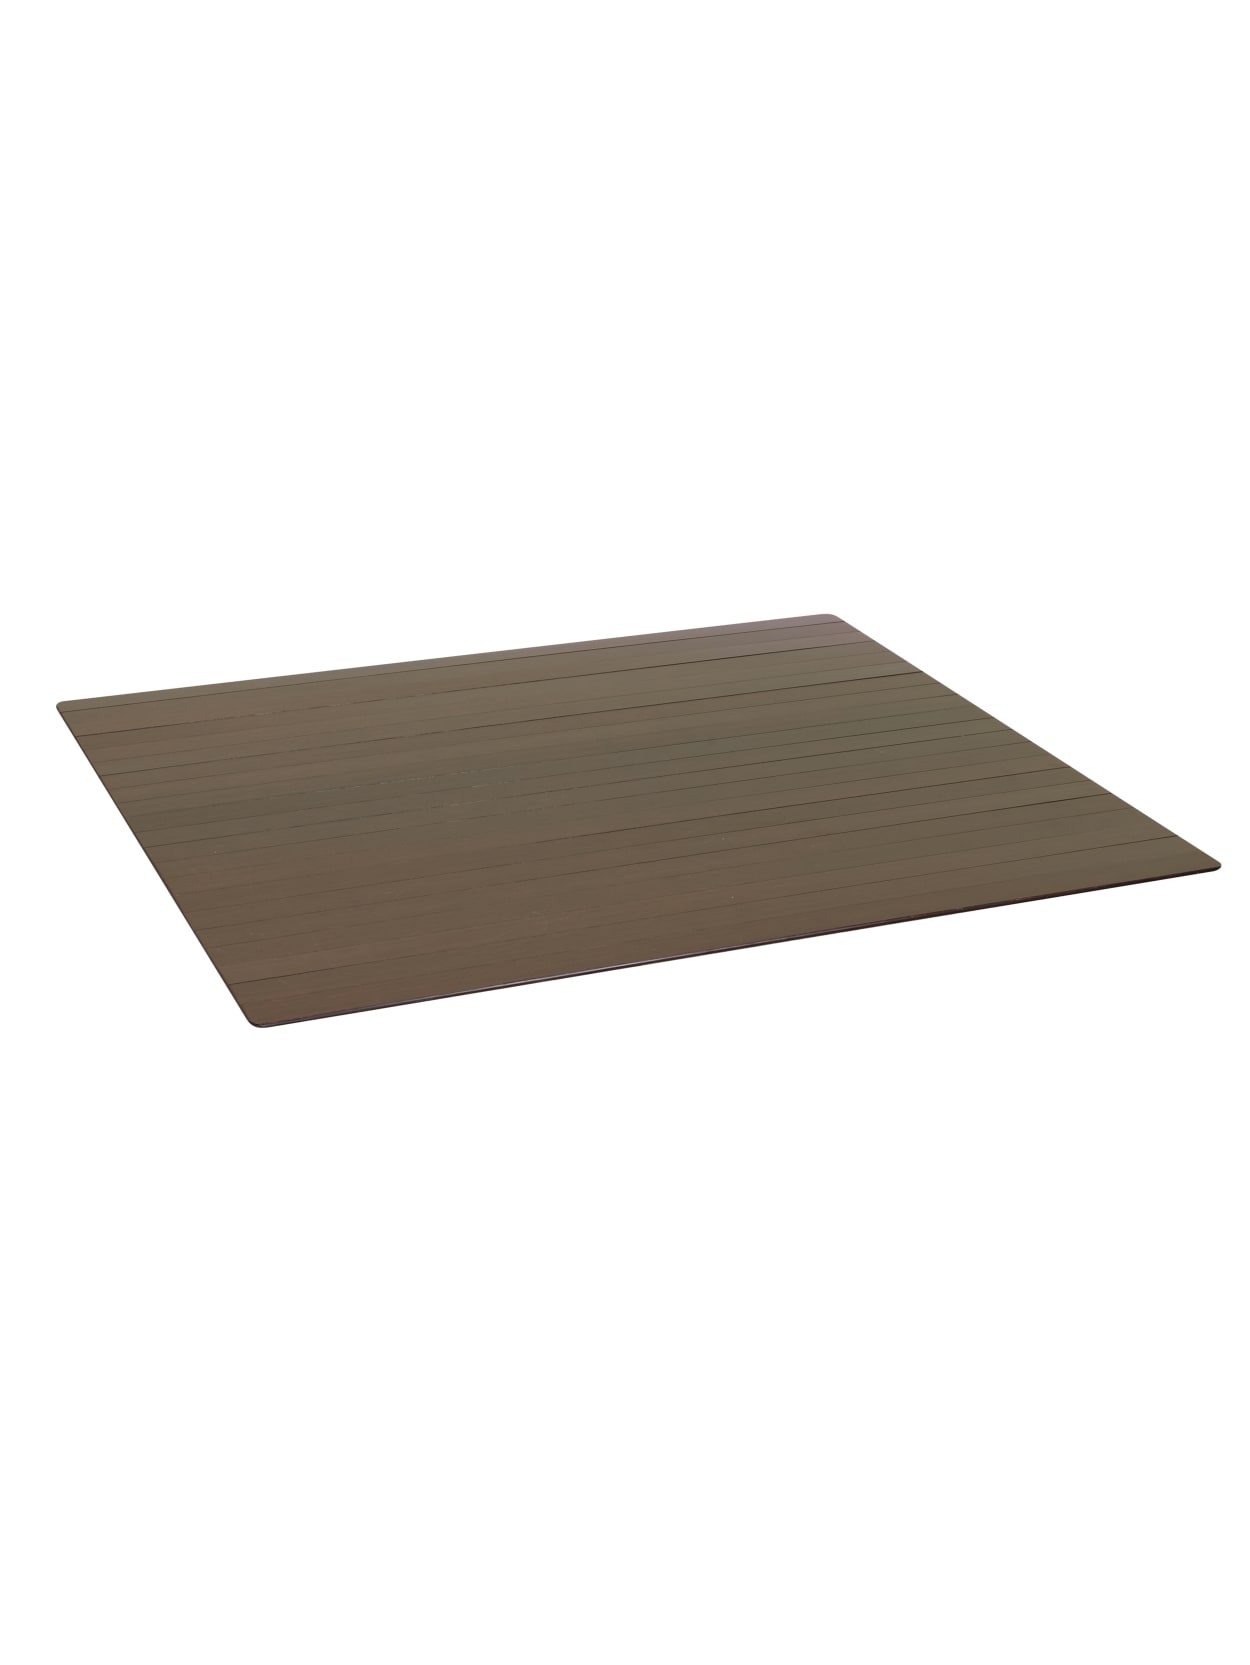 Reale Bamboo Chair Mat 42 X 48